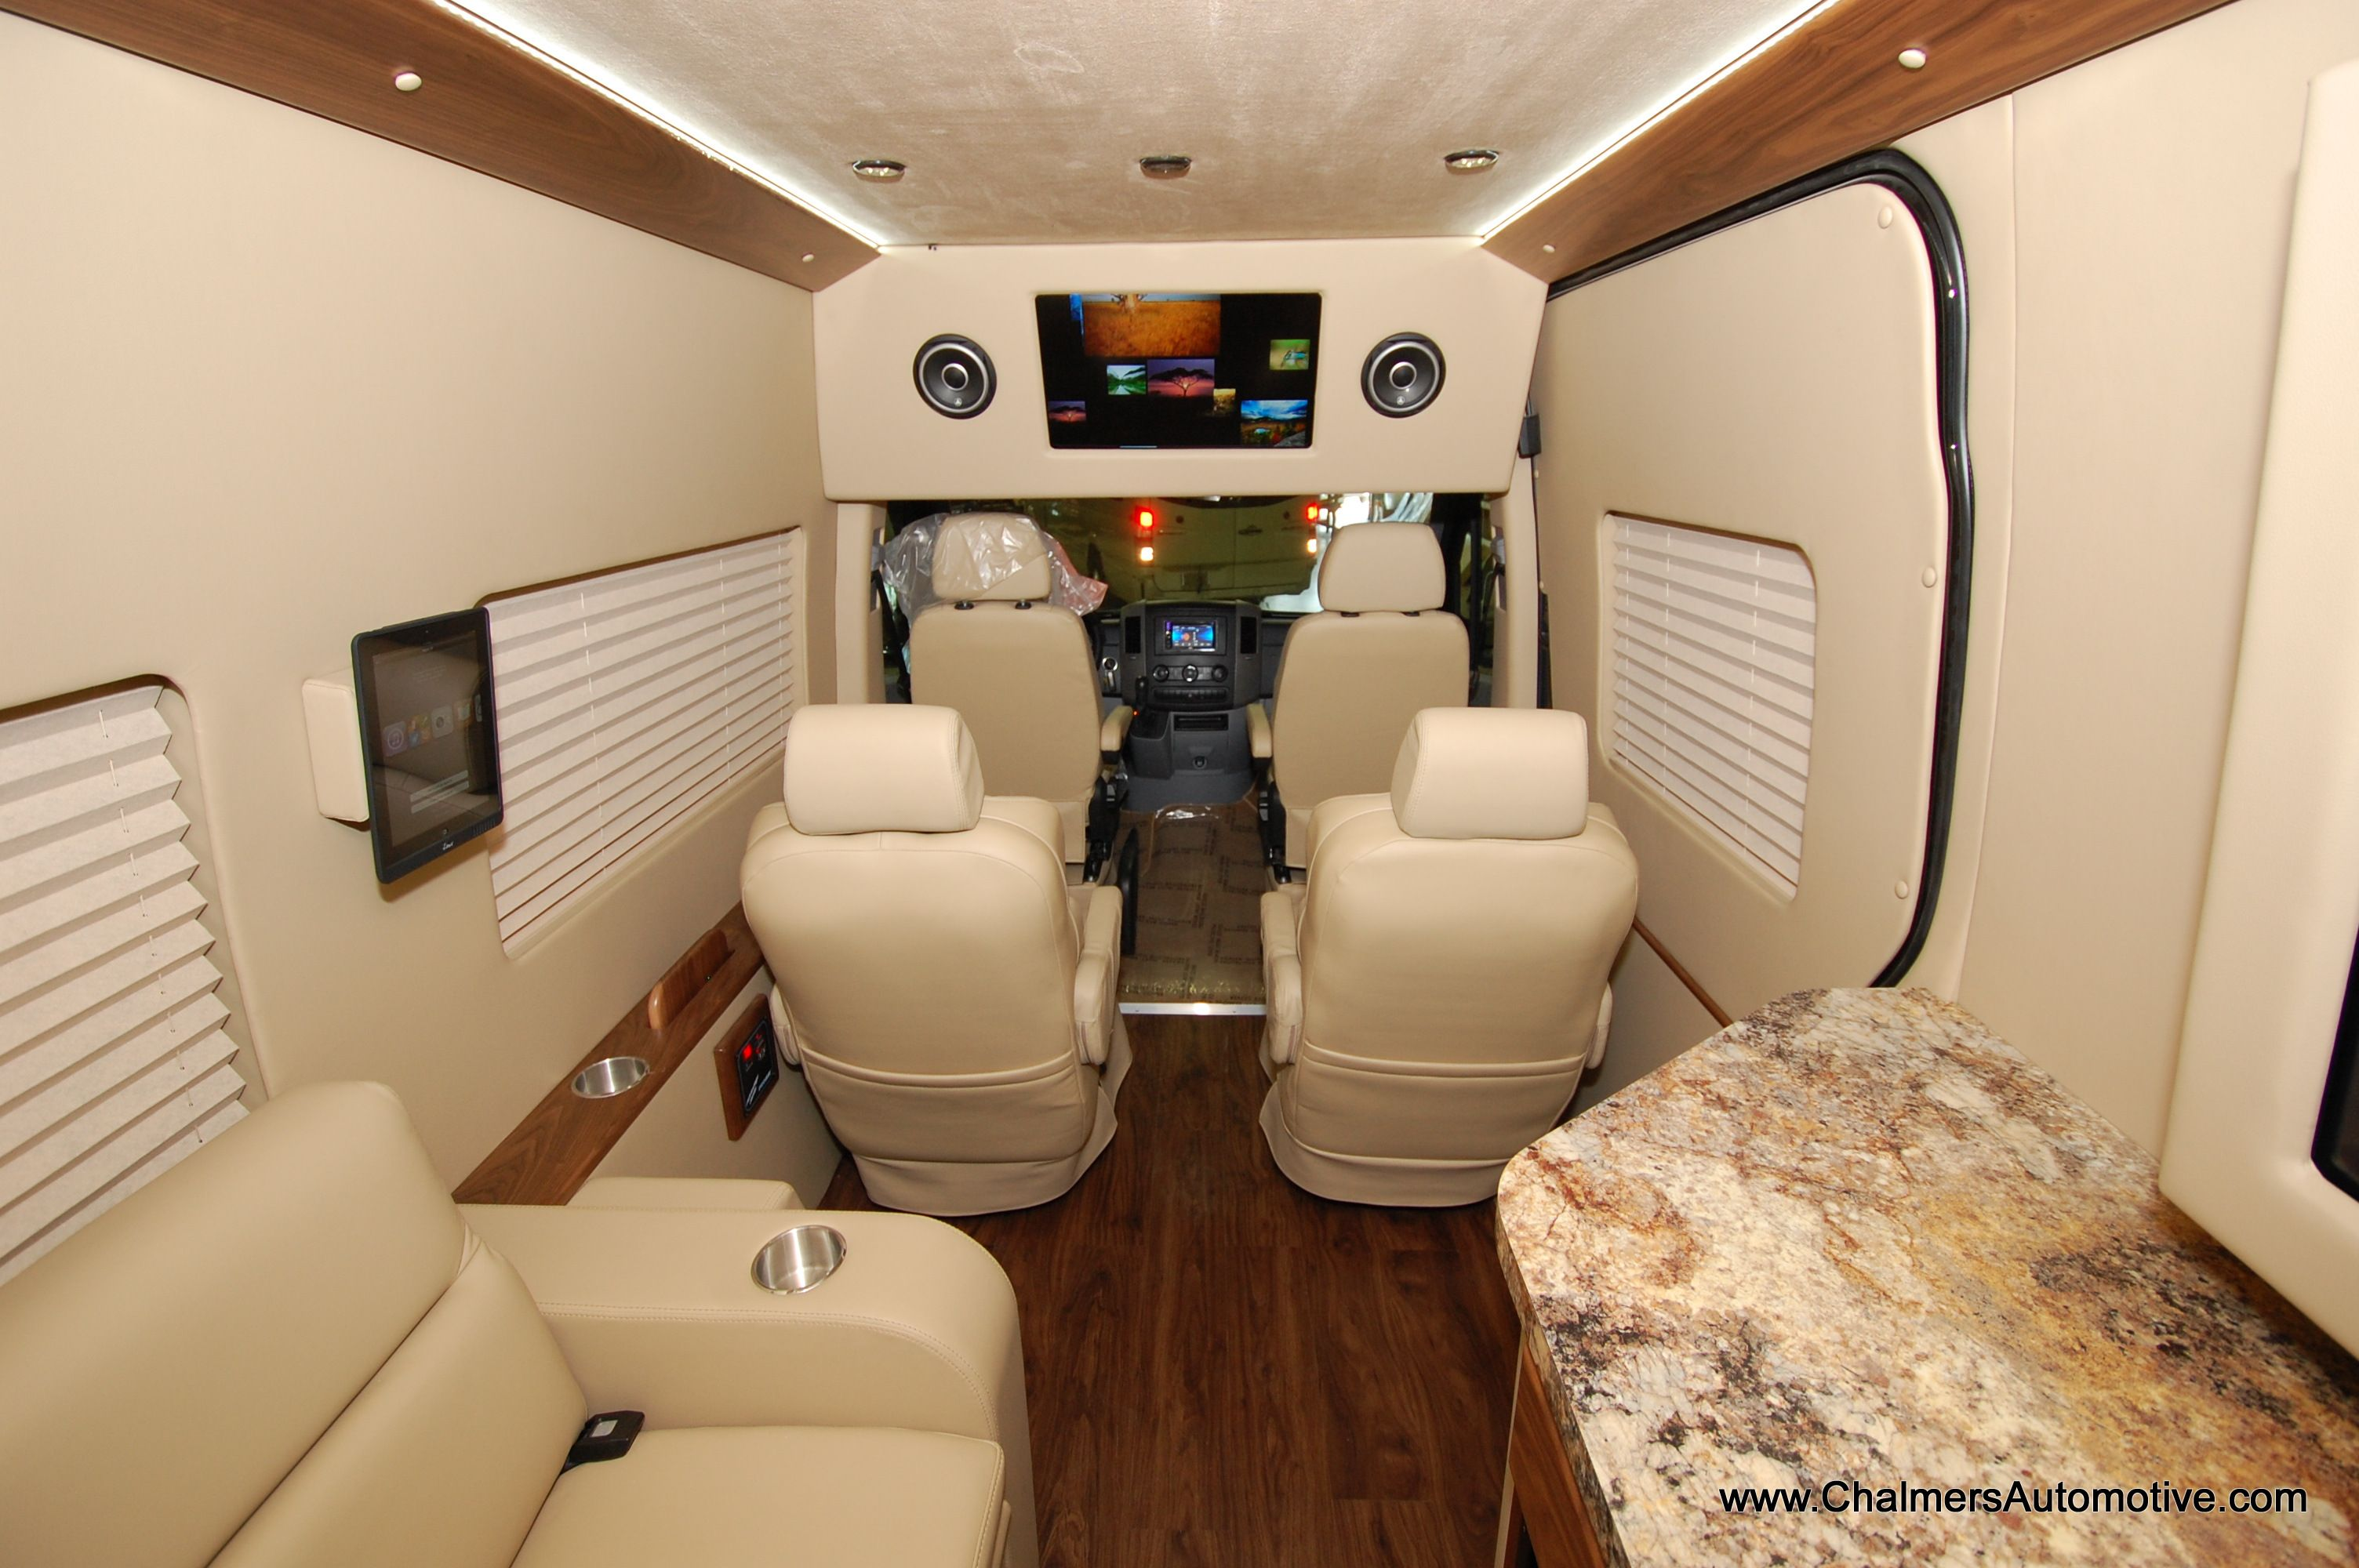 it mercedesbenz conversion custom vans largest customize the to size only option benz not us by most van is allows diverse sprinter sheer vehicle mercedes sherrod image we s